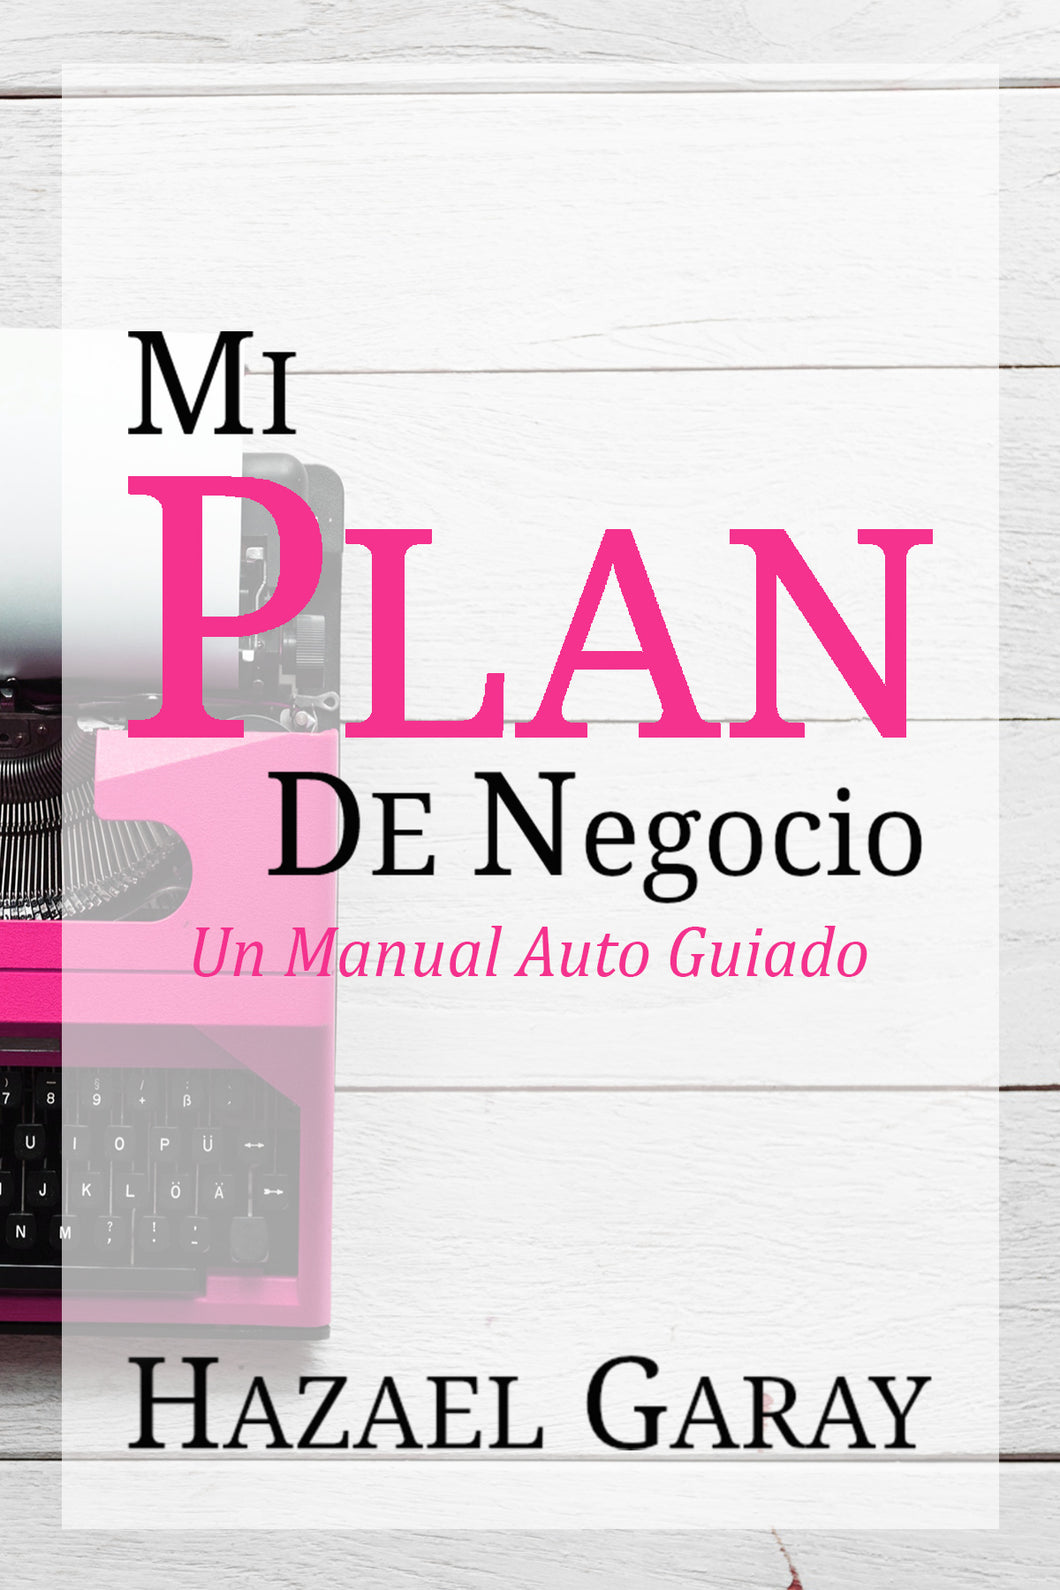 Mi Plan de Negocio: Un Manual Auto Guiado